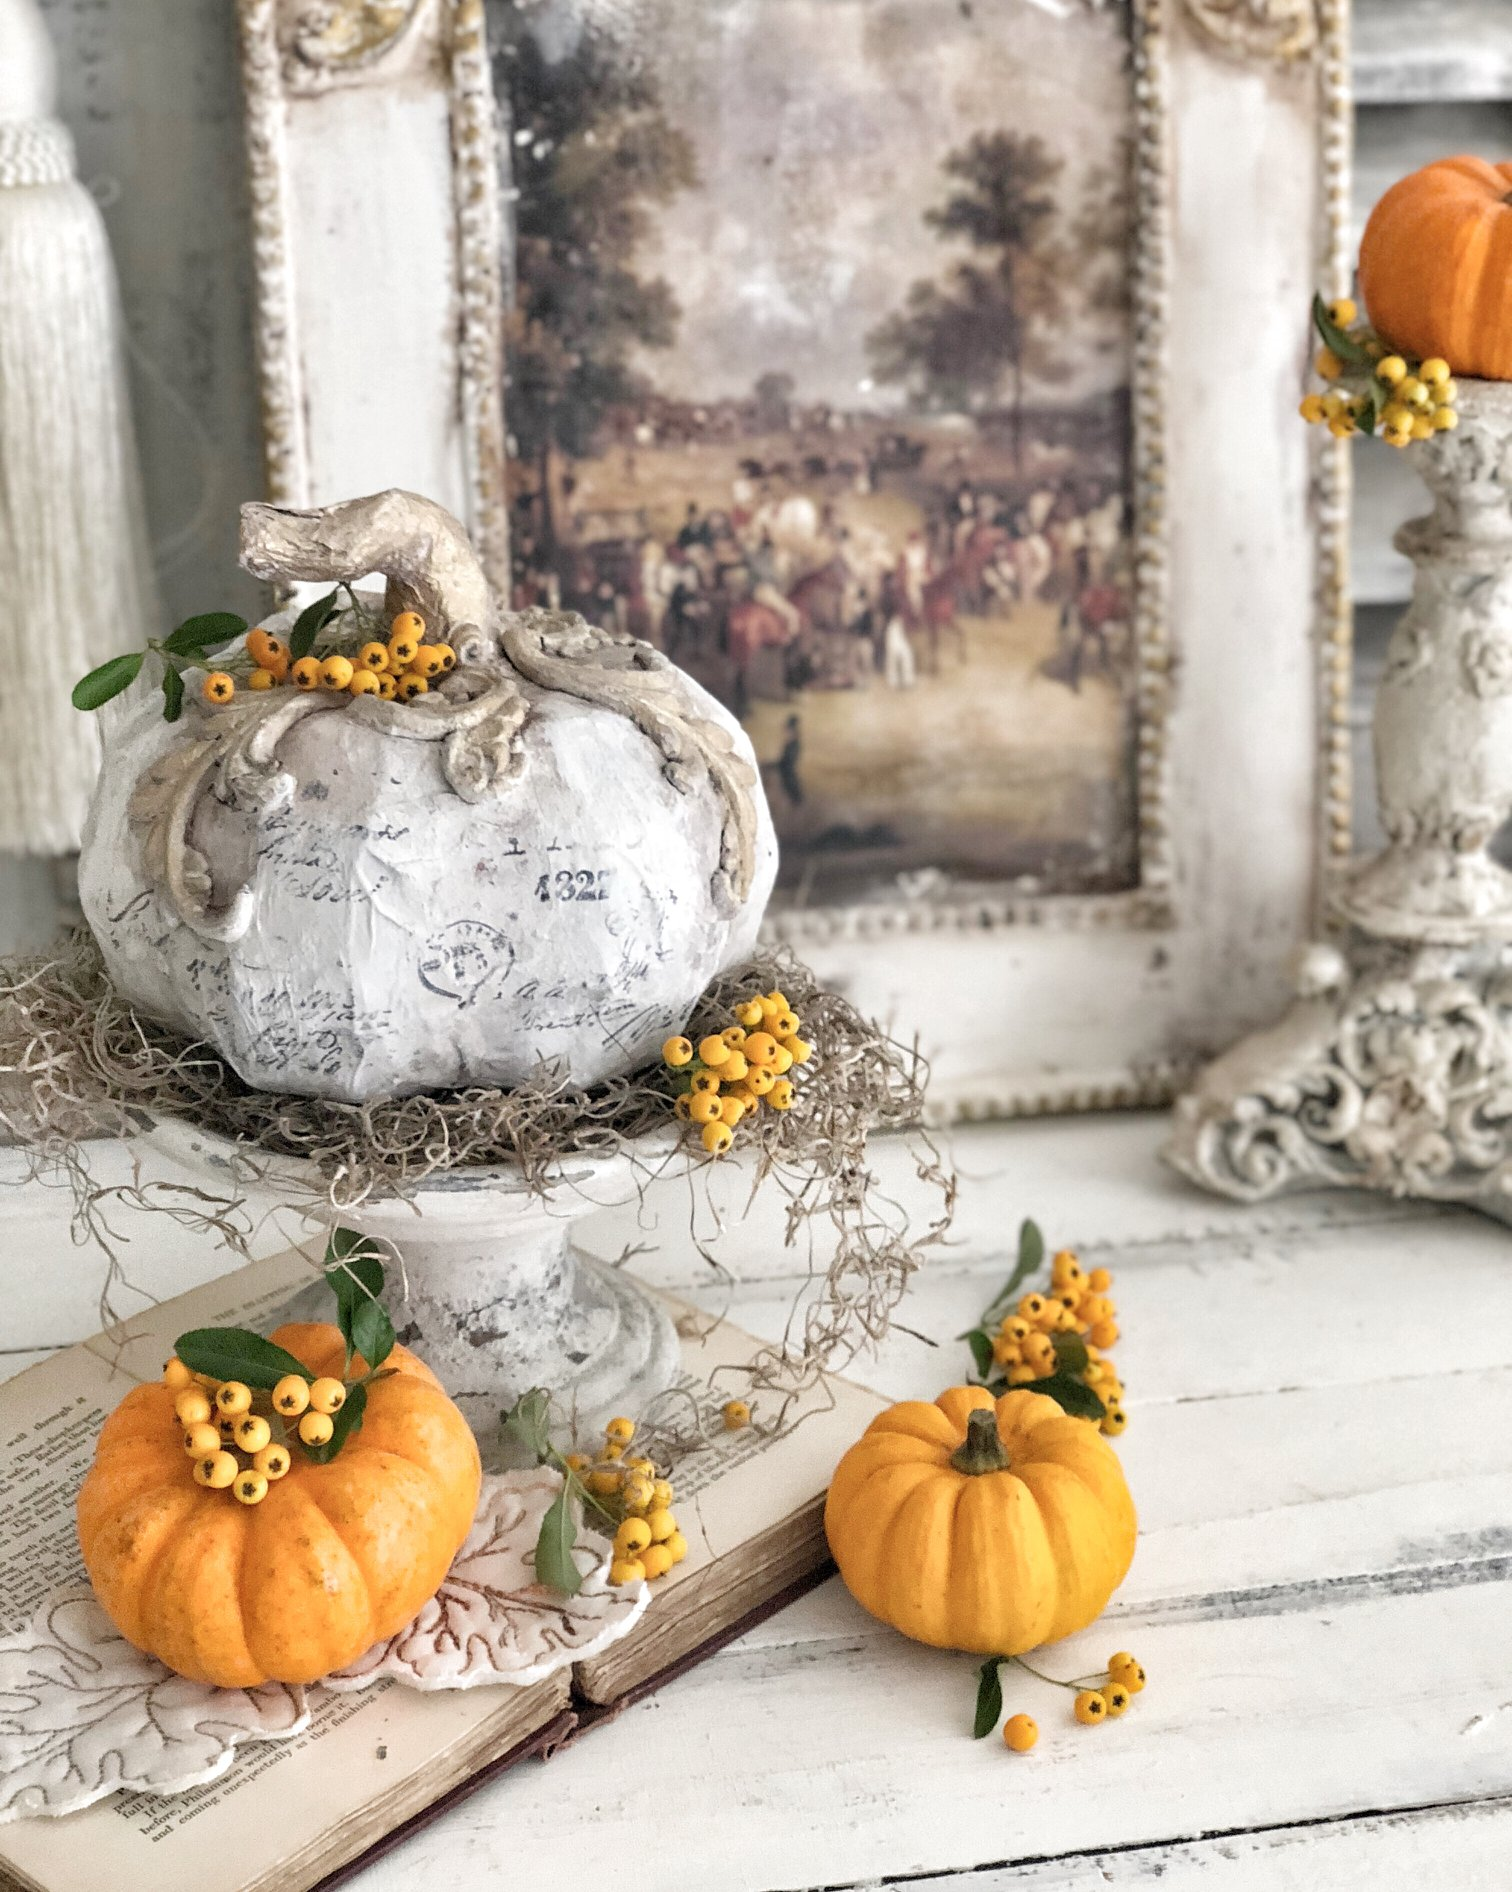 Her pumpkin got a bit of a makeover as well using the paper clay and Decor Moulds™-its so sweet! Here is a 101 video showing you how to use the clay in the mould and applying it to a project..the visuals are always so helpful-don't you think?